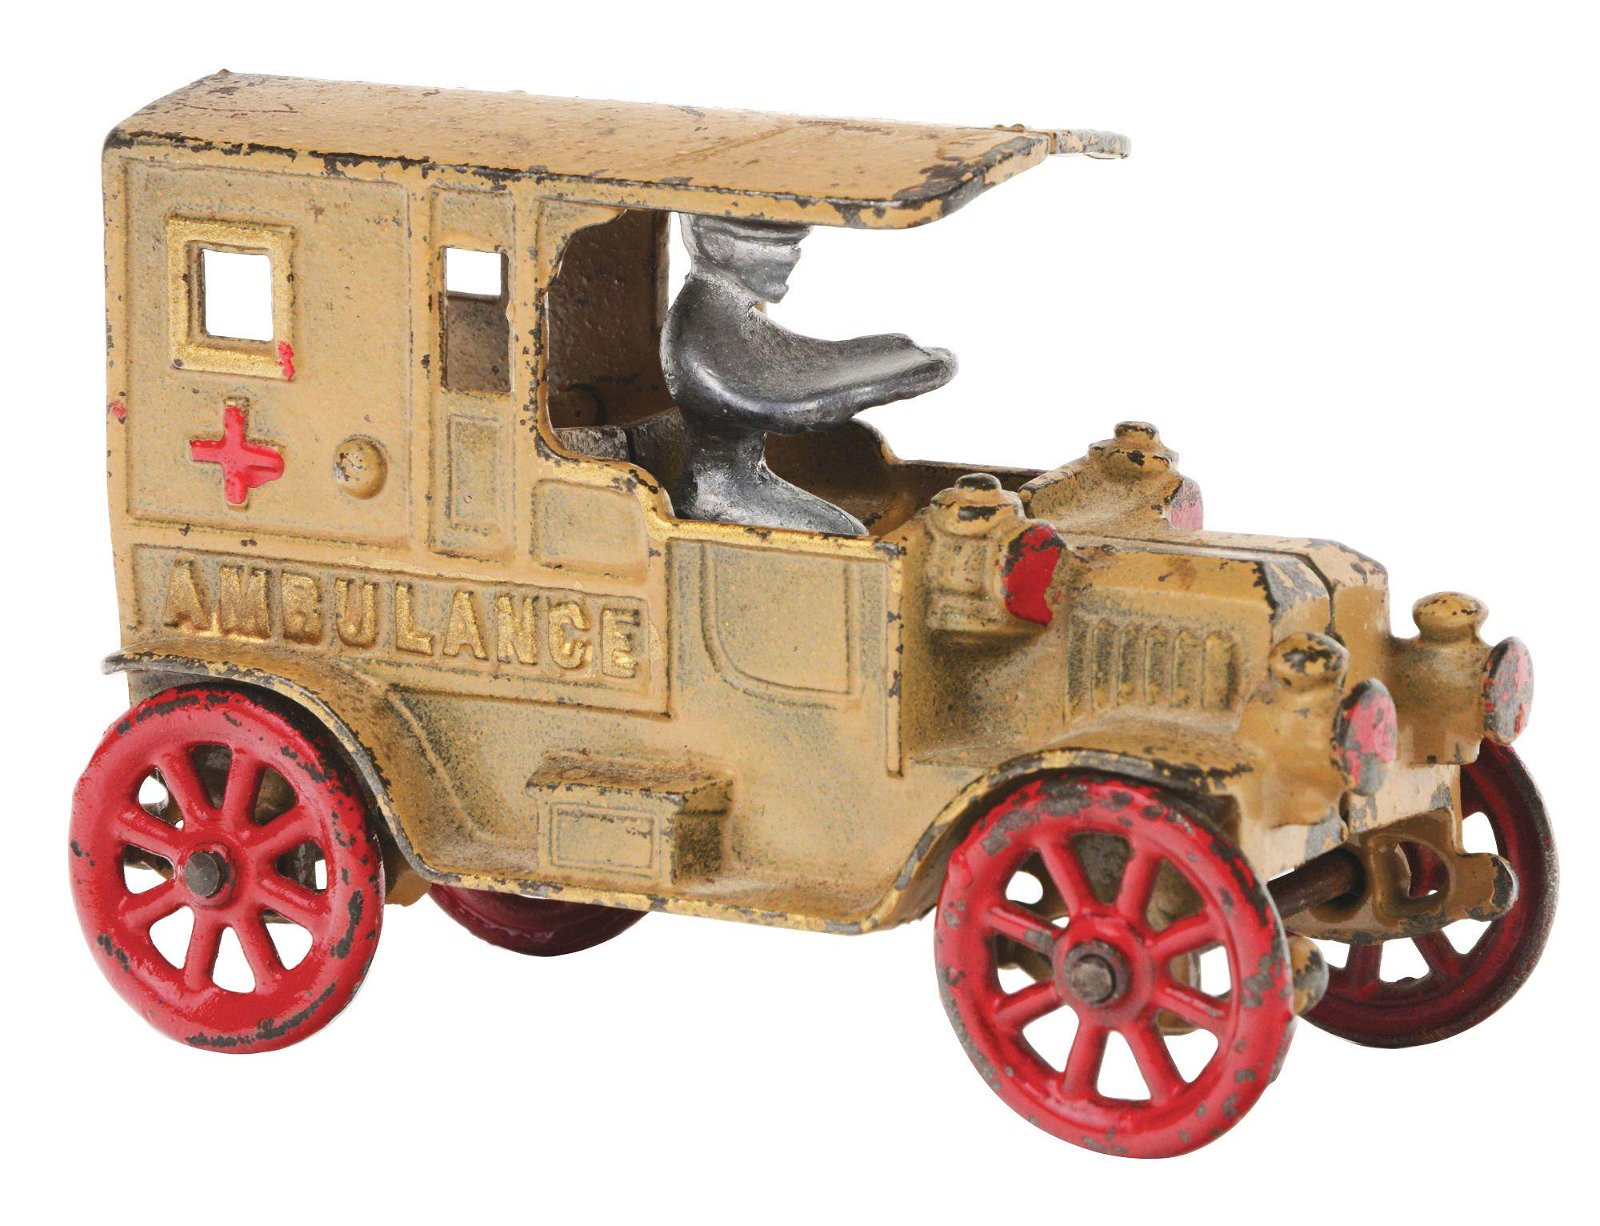 EARLY KENTON CAST IRON AMBULANCE.